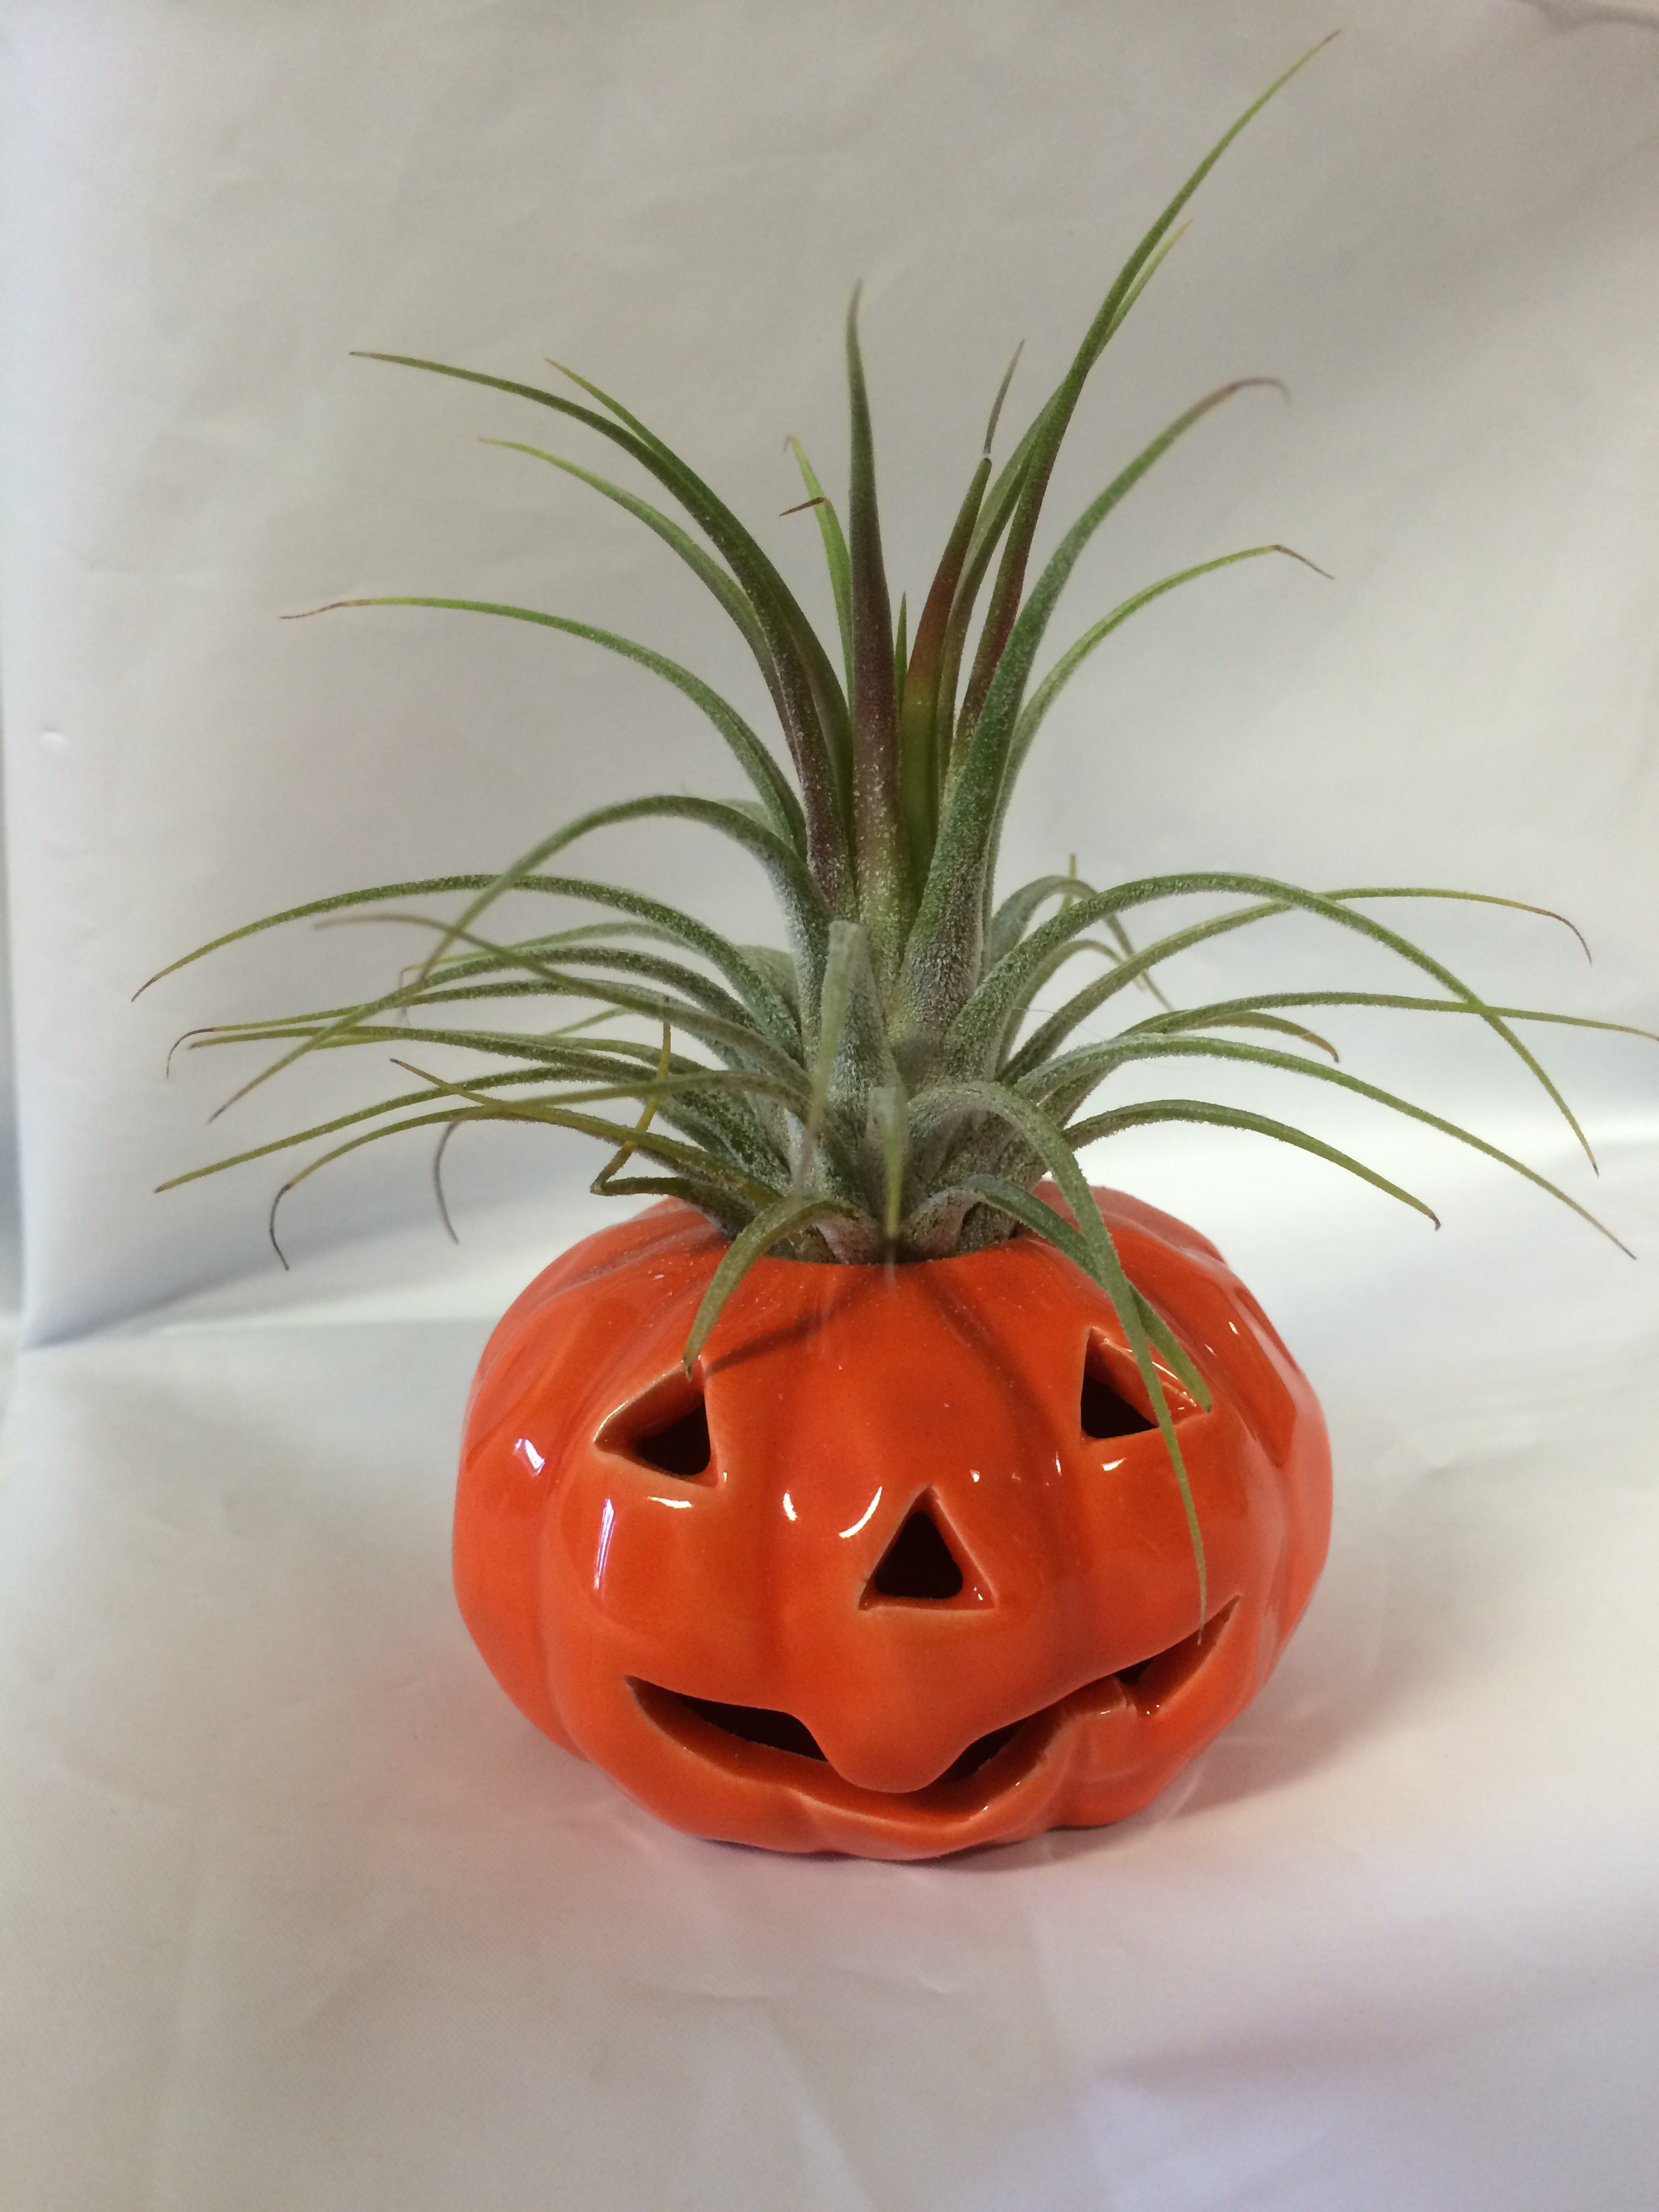 ceramic pumpkin, air plant, fall, easy care, soilless, no soil planter